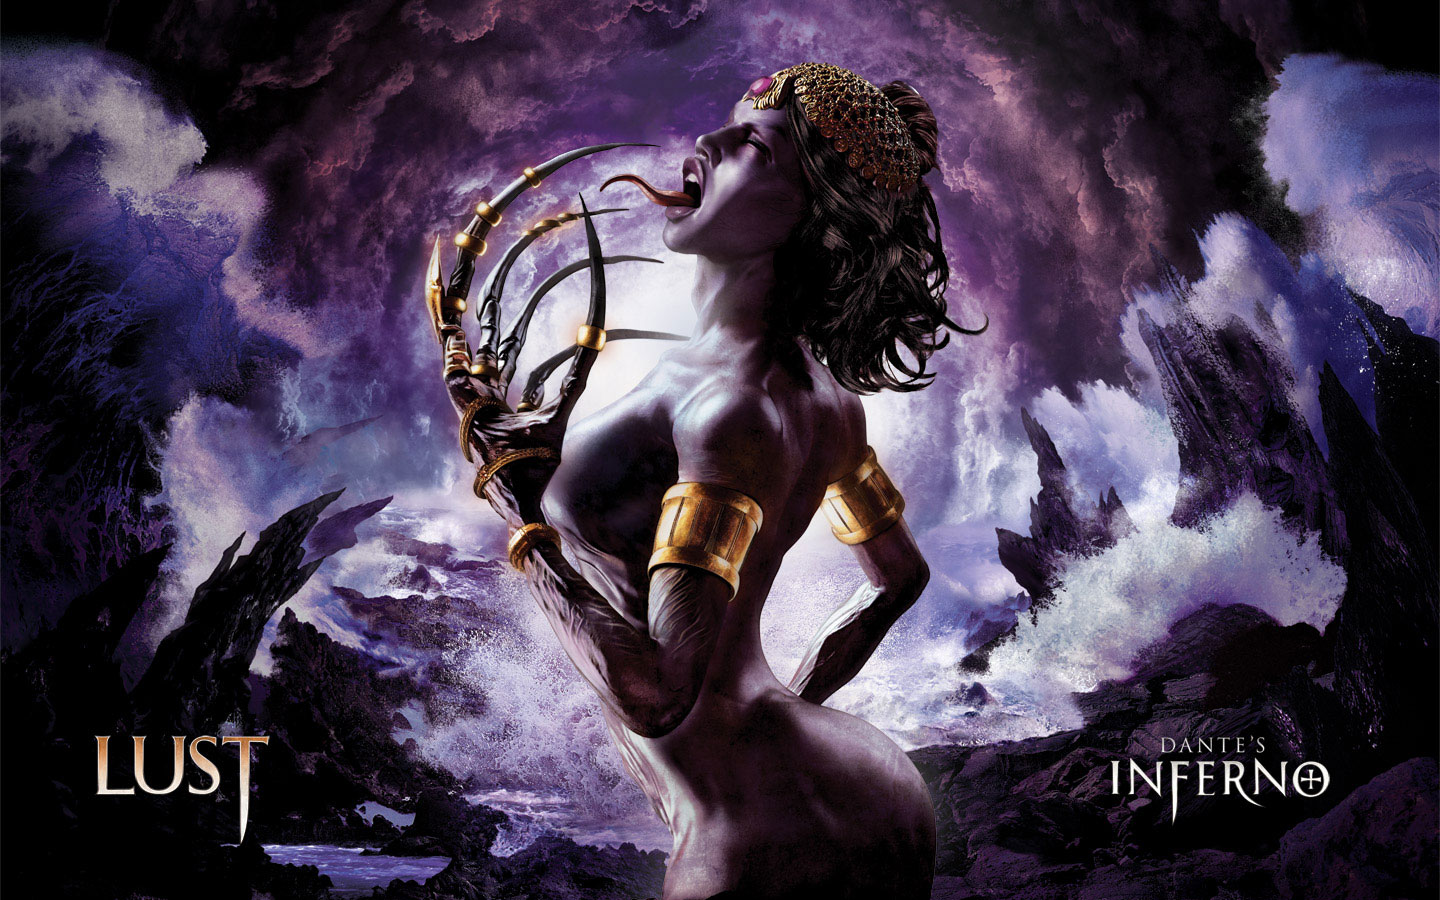 Dantes Inferno Lust HD Wallpaper